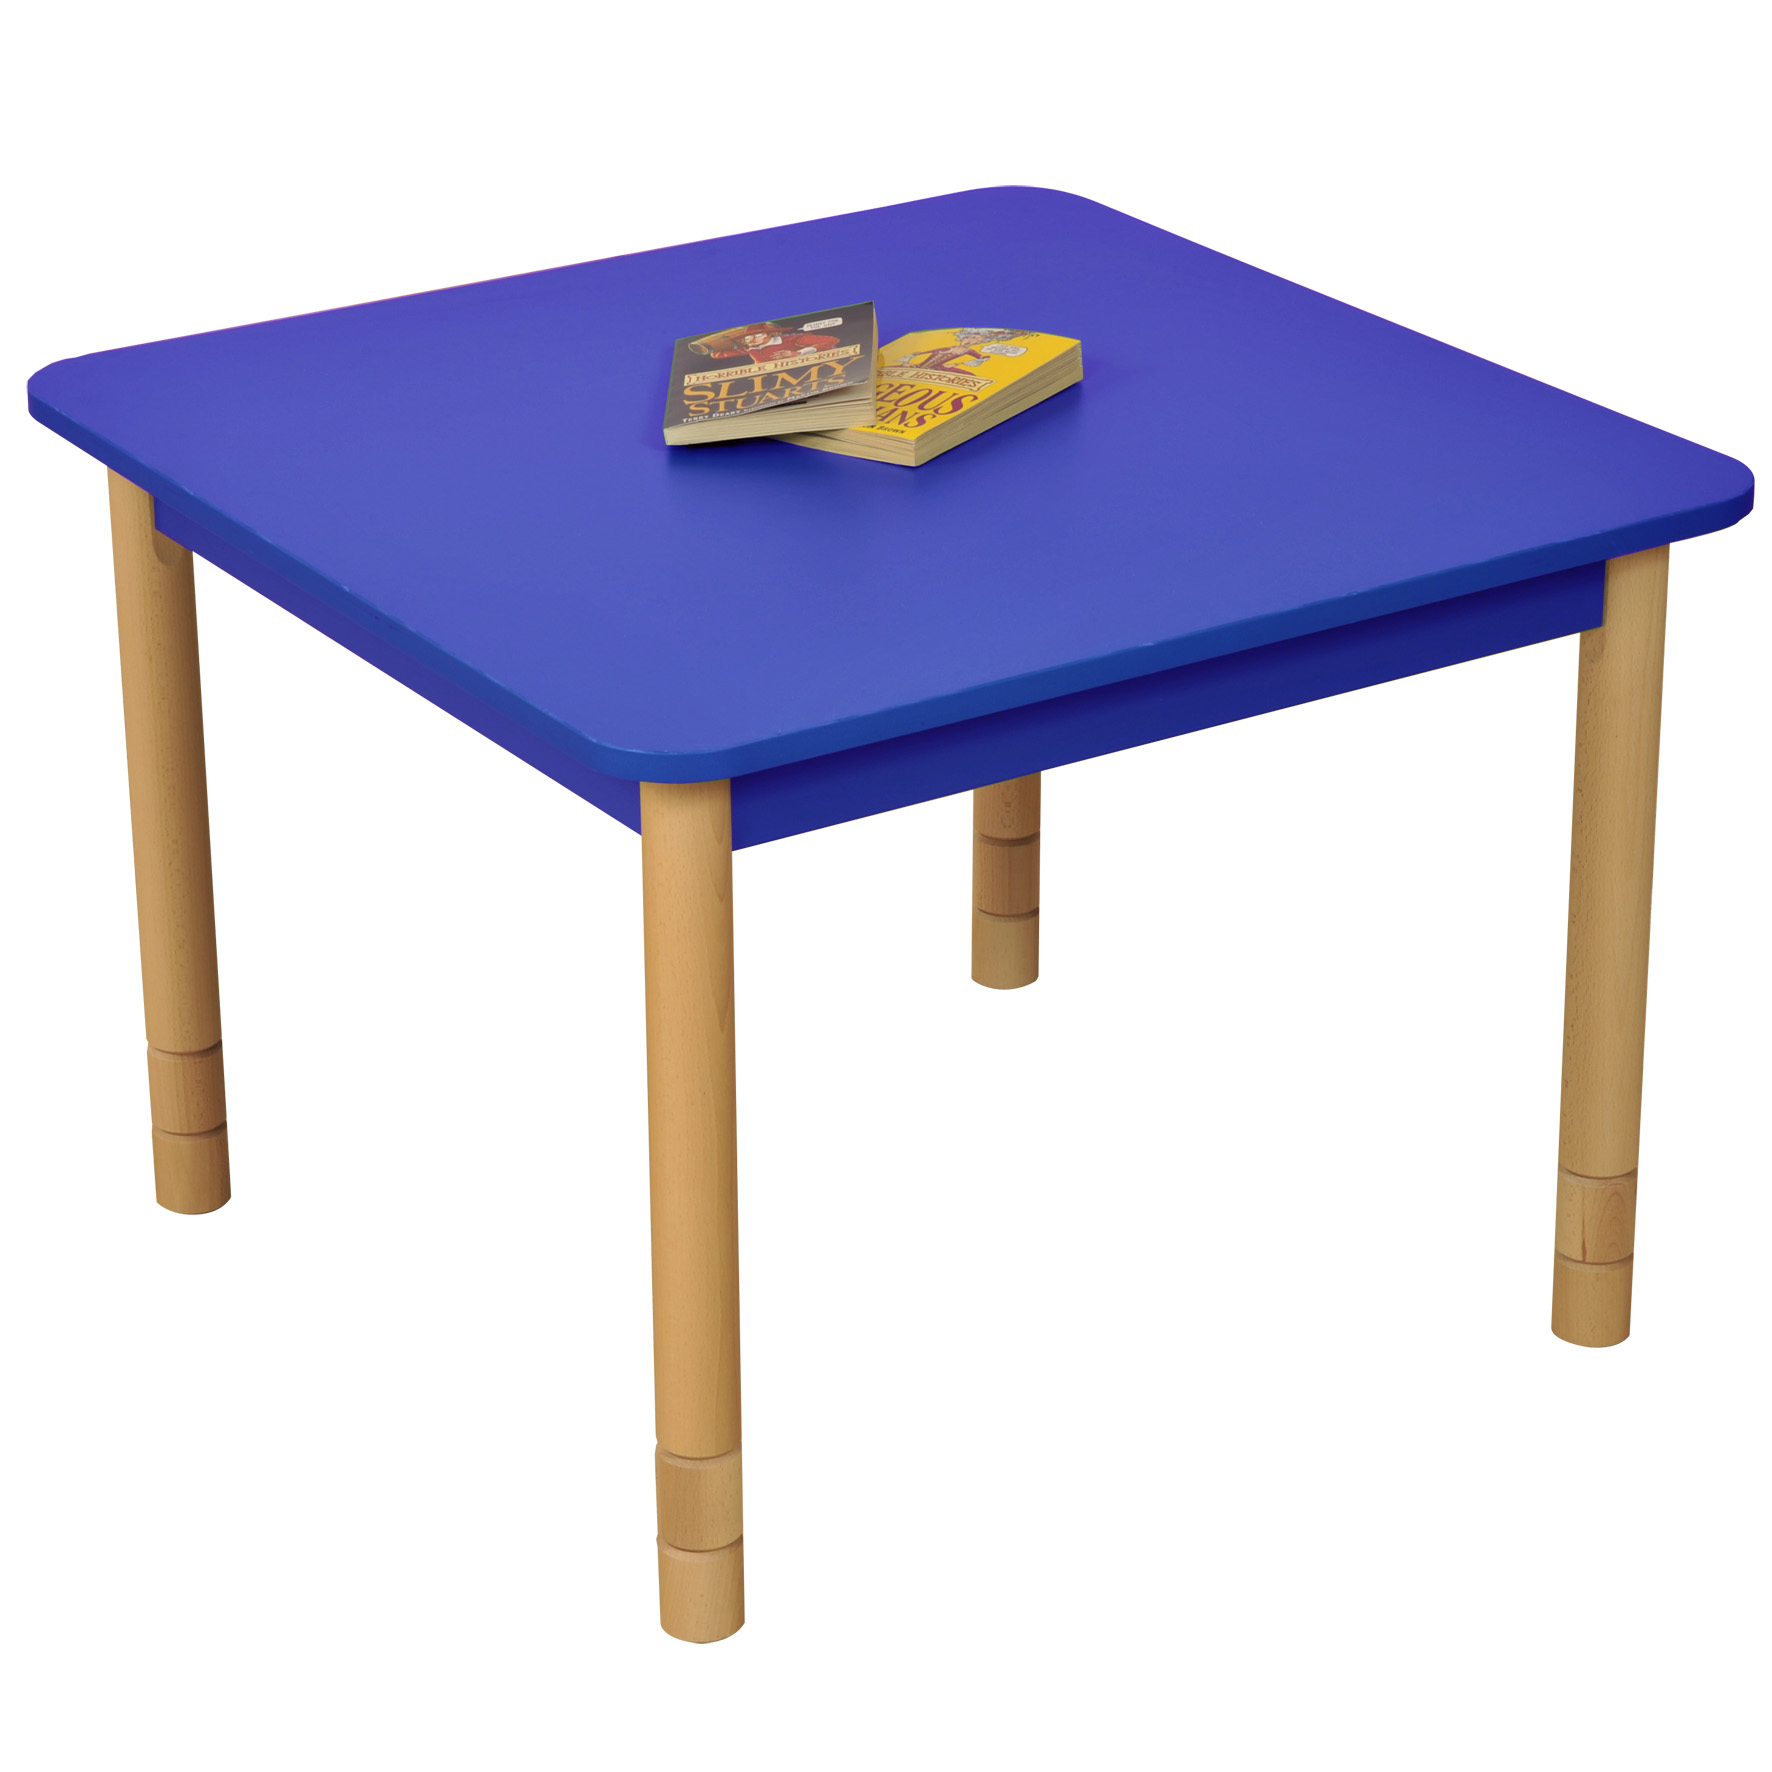 Height Adjustable Square Table Bambino Planet